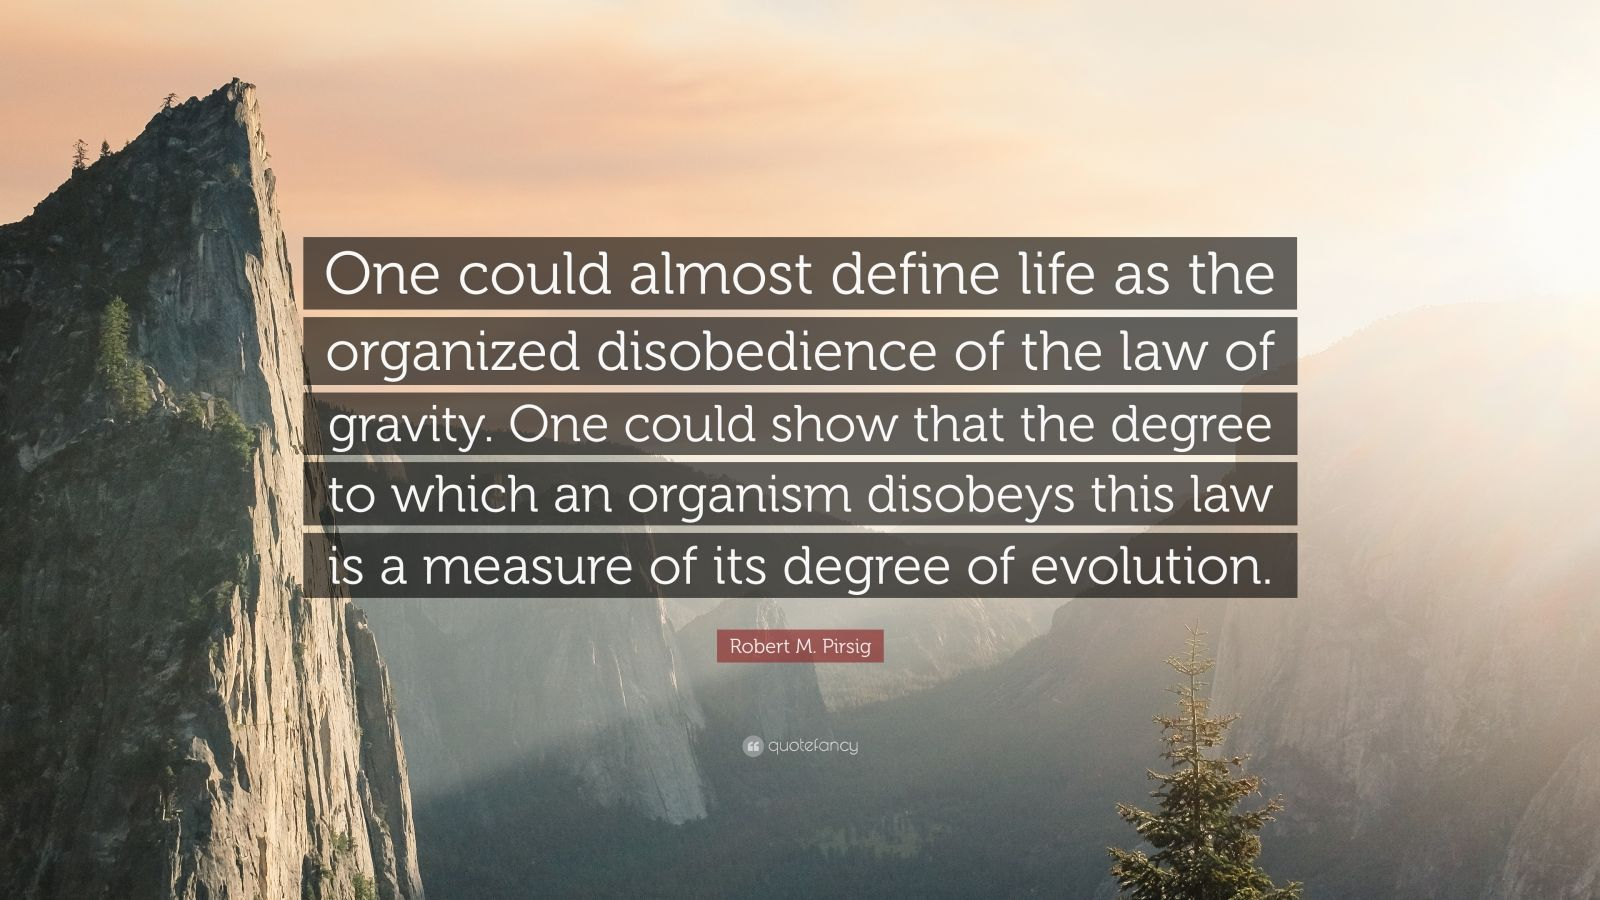 """Robert M. Pirsig Quote: """"One could almost define life as the organized disobedience of the law of gravity. One could show that the degree to which an organism disobeys this law is a measure of its degree of evolution."""""""